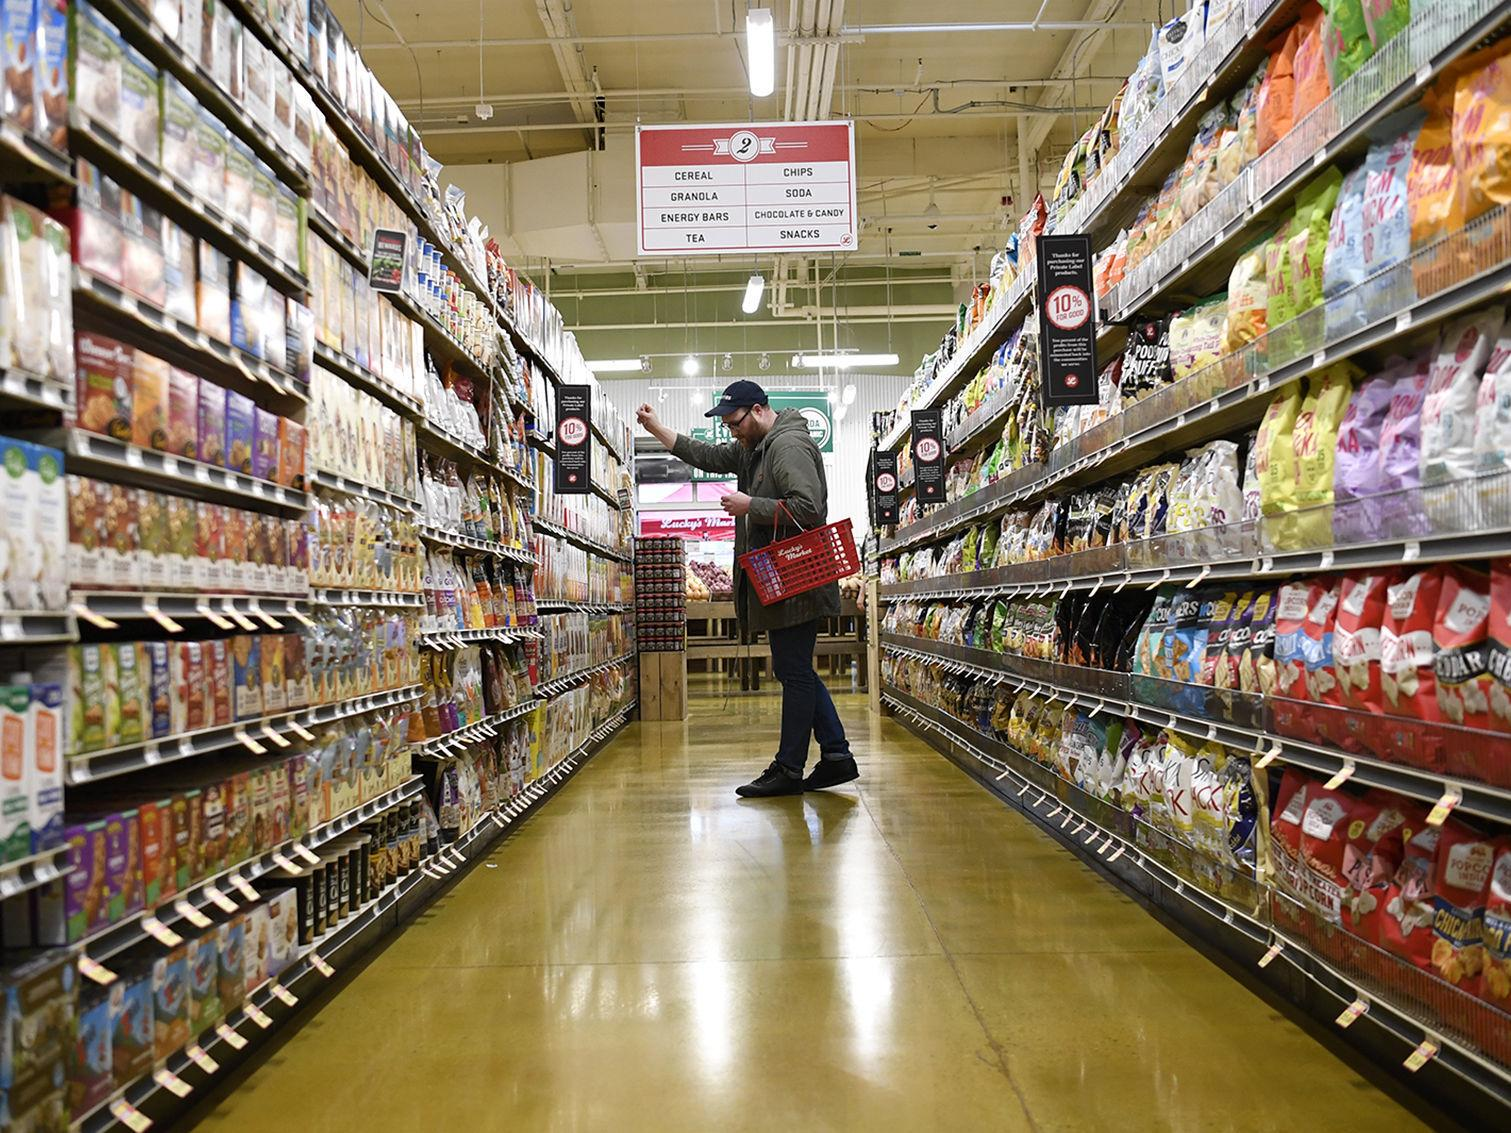 New Lucky's Market grocery store opens at Southgate Mall with huge deli,  sushi bar | Local News | missoulian.com